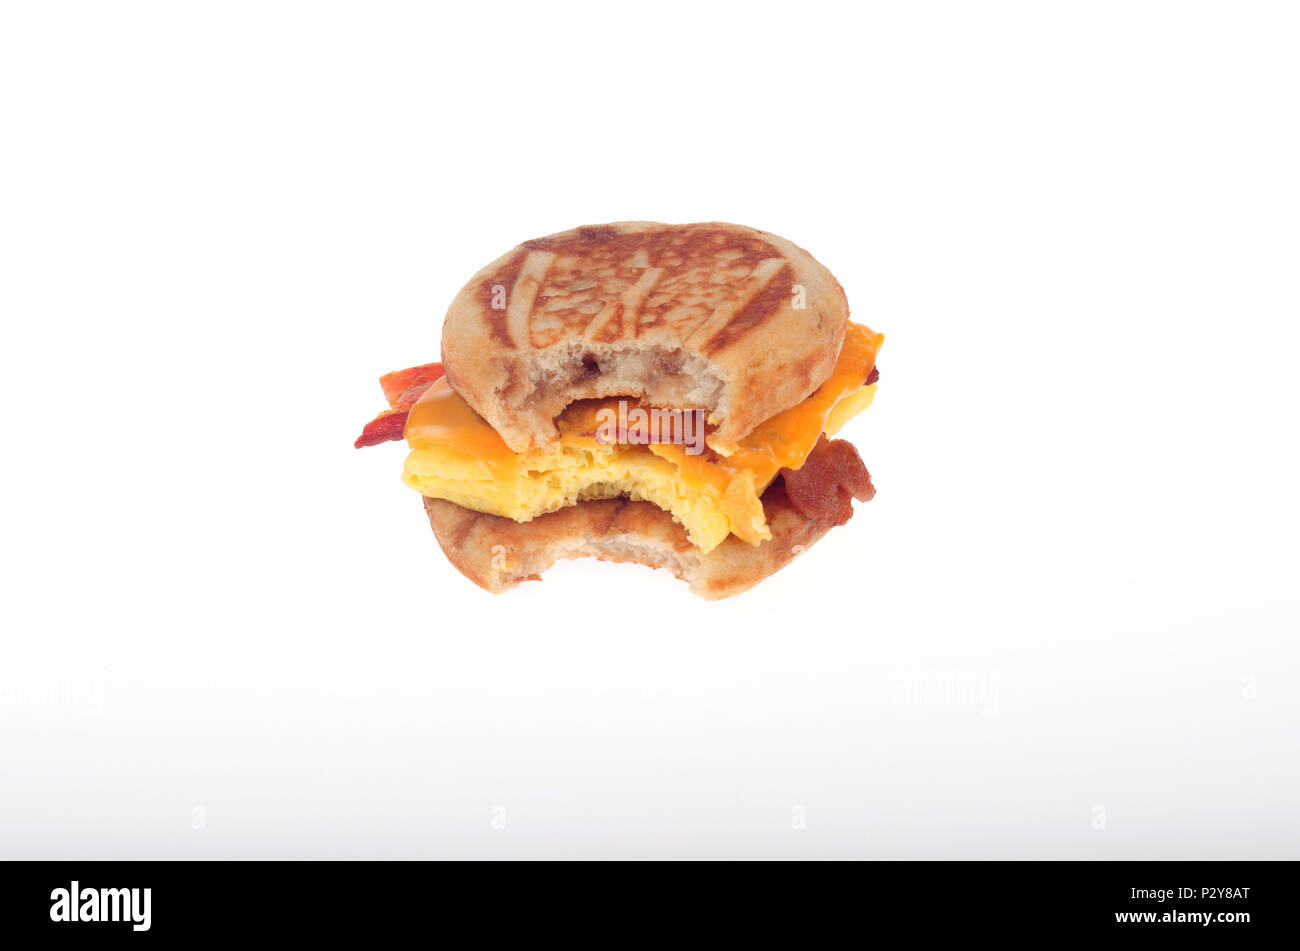 McDonald's McGriddle bacon, egg and cheese breakfast fast food sandwich with bite taken out isolated on white - Stock Image